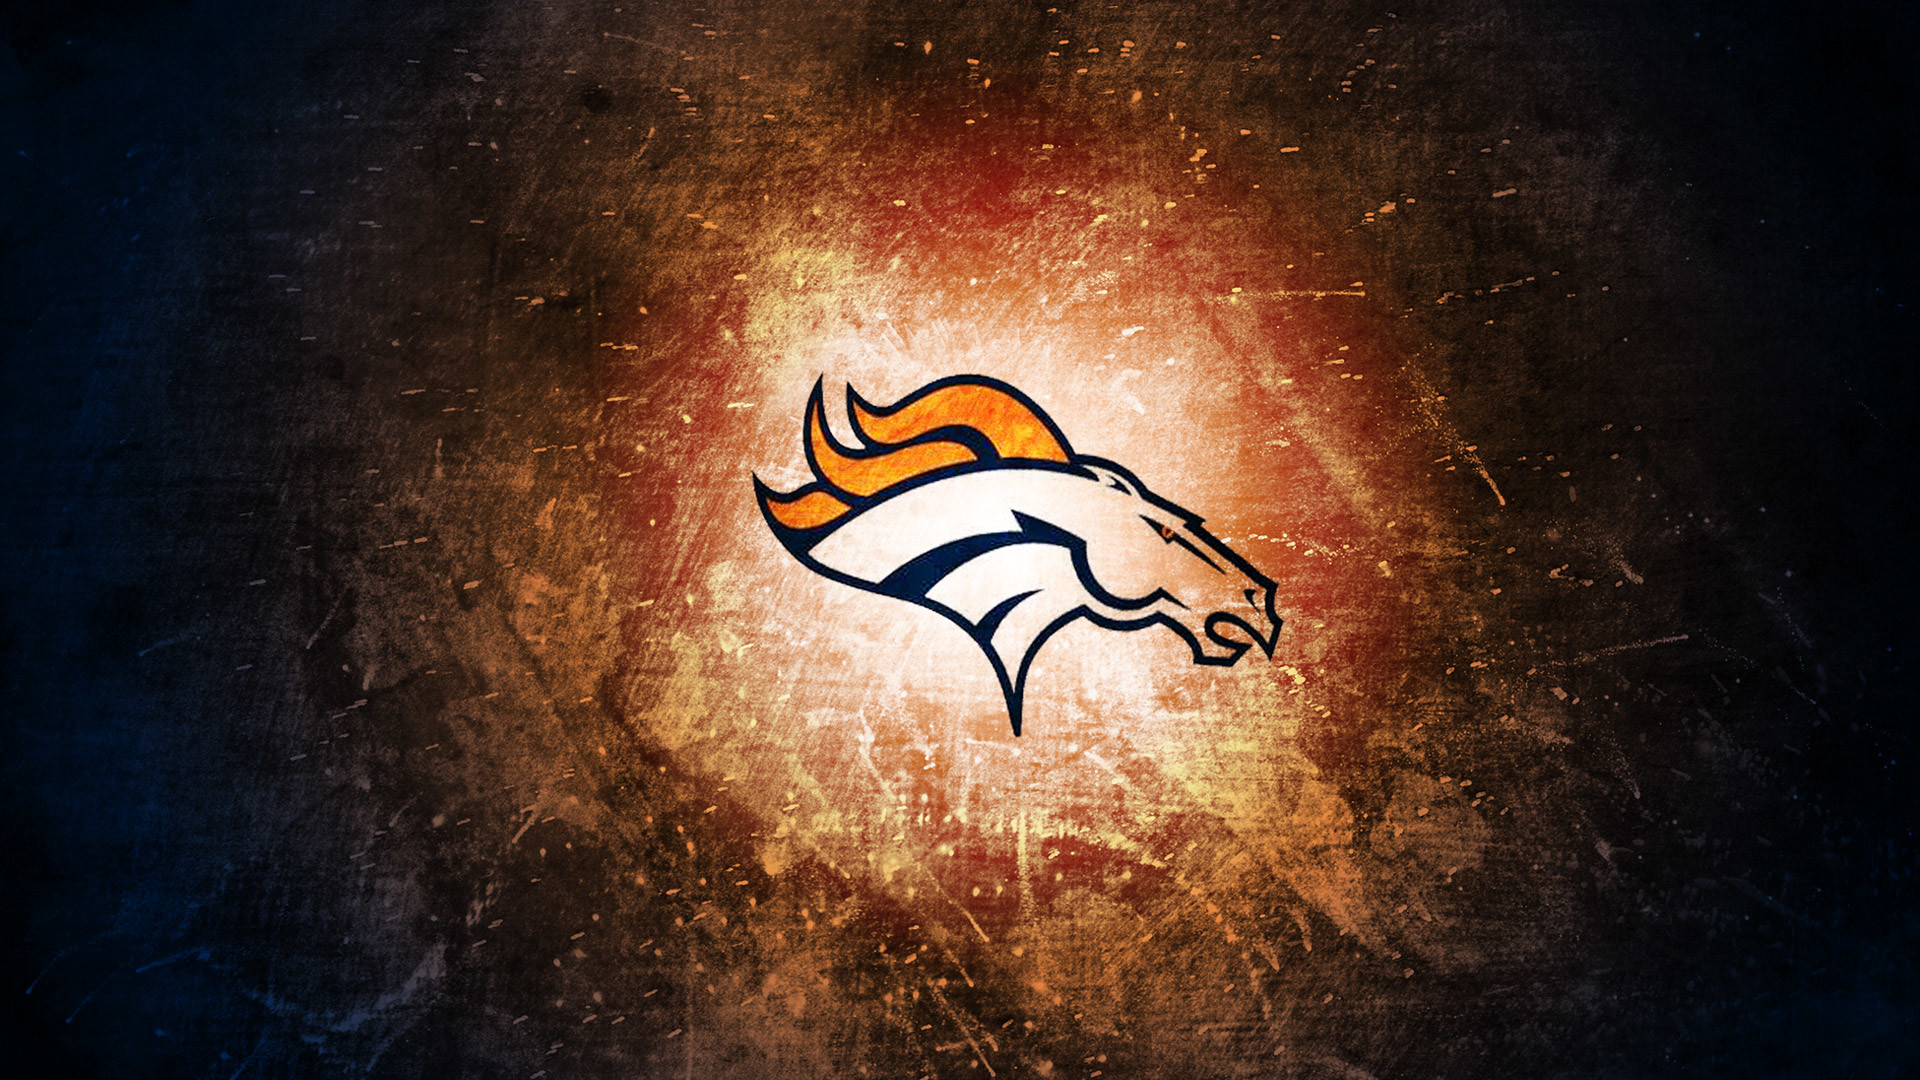 Denver Broncos Facebook Cover wallpapers HD free – 431541